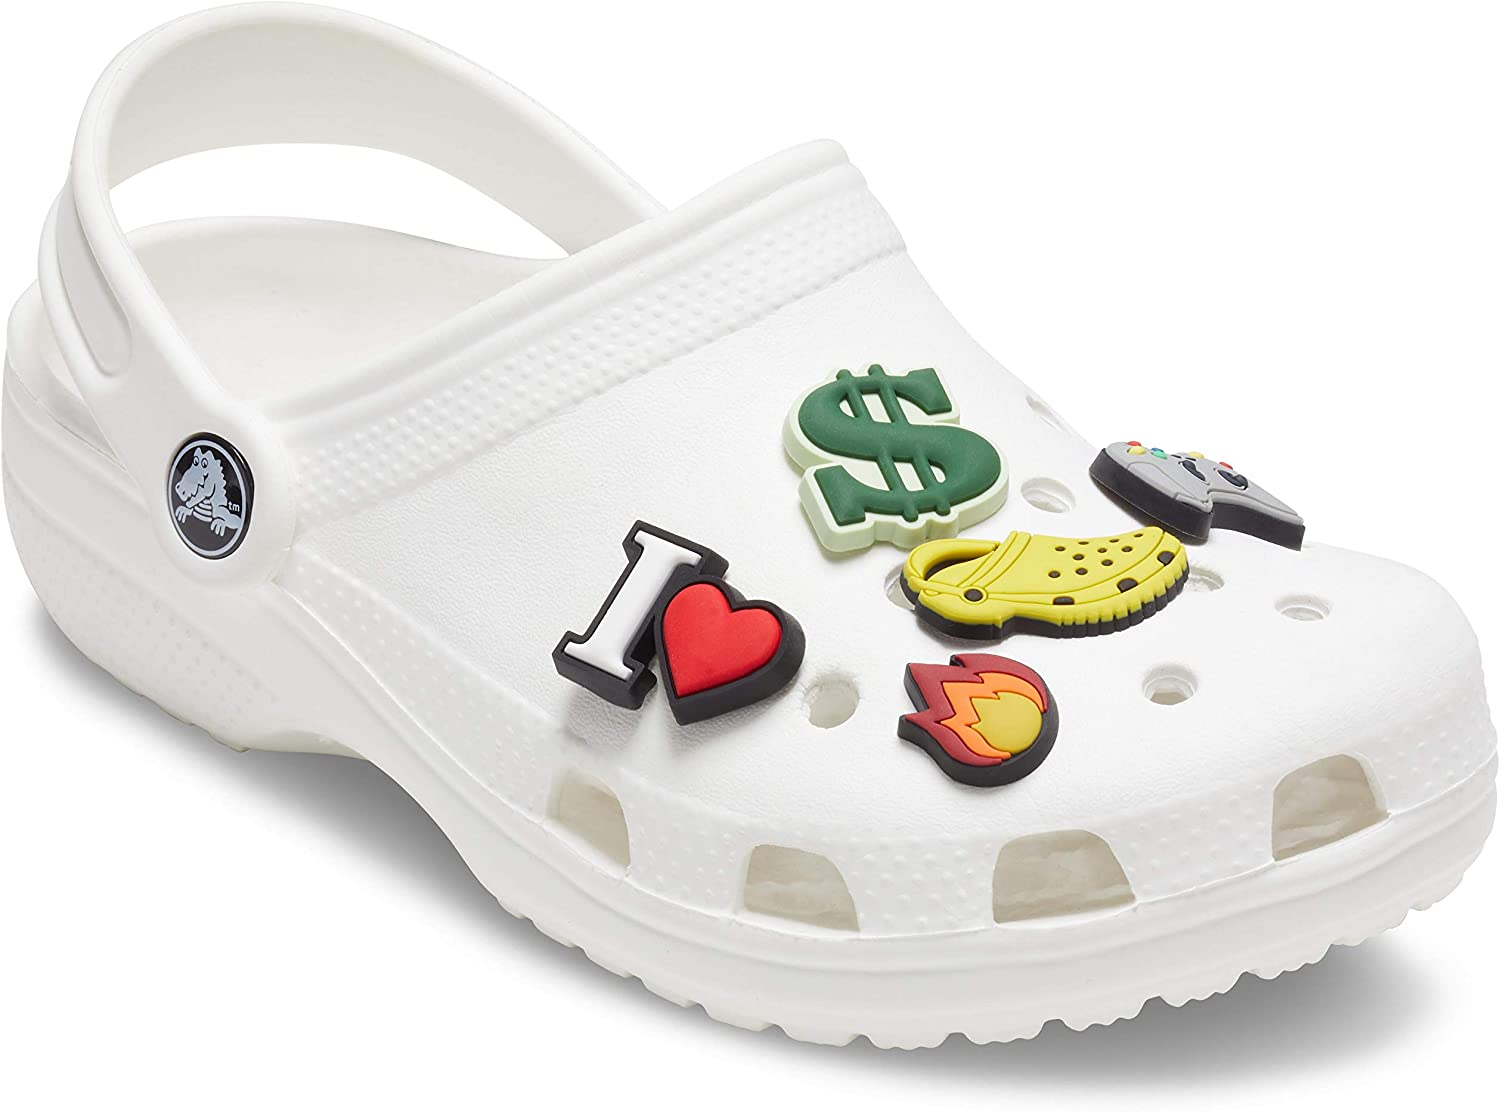 Craft Shoe Charms for Crocs